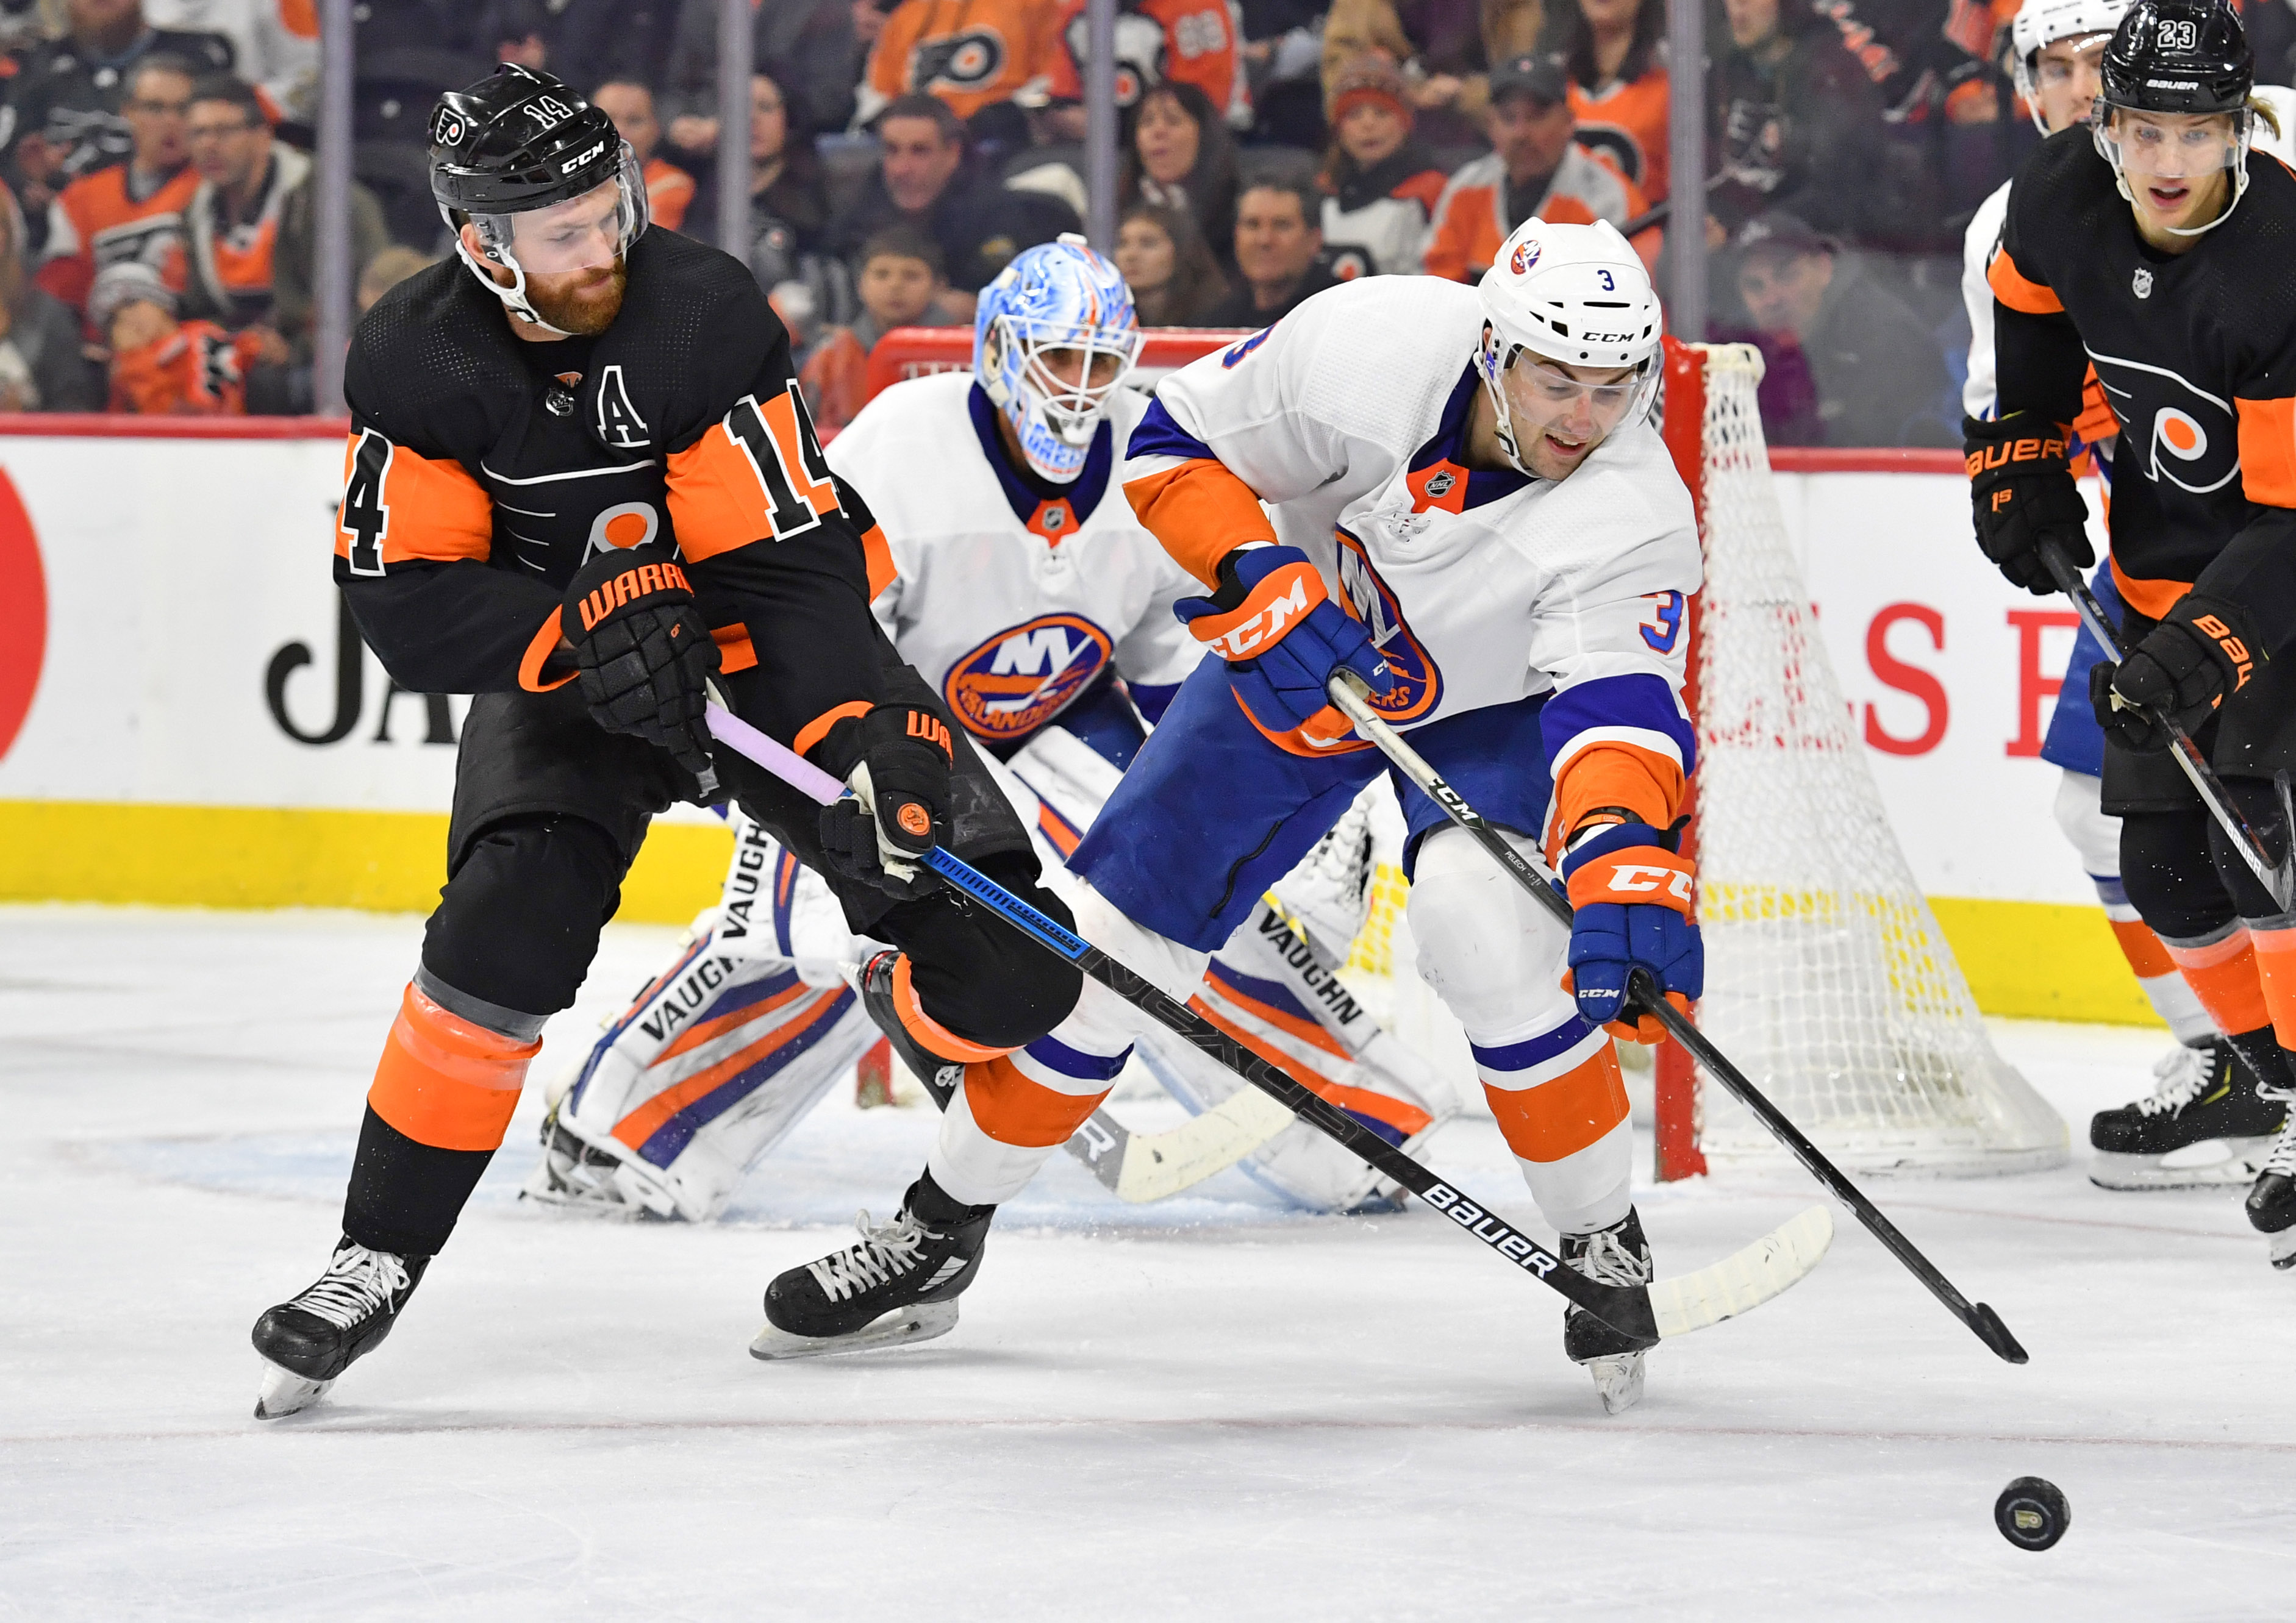 Nov 16, 2019; Philadelphia, PA, USA; New York Islanders defenseman Adam Pelech (3) clears the puck away from Philadelphia Flyers center Sean Couturier (14) during the second period at Wells Fargo Center. Mandatory Credit: Eric Hartline-USA TODAY Sports